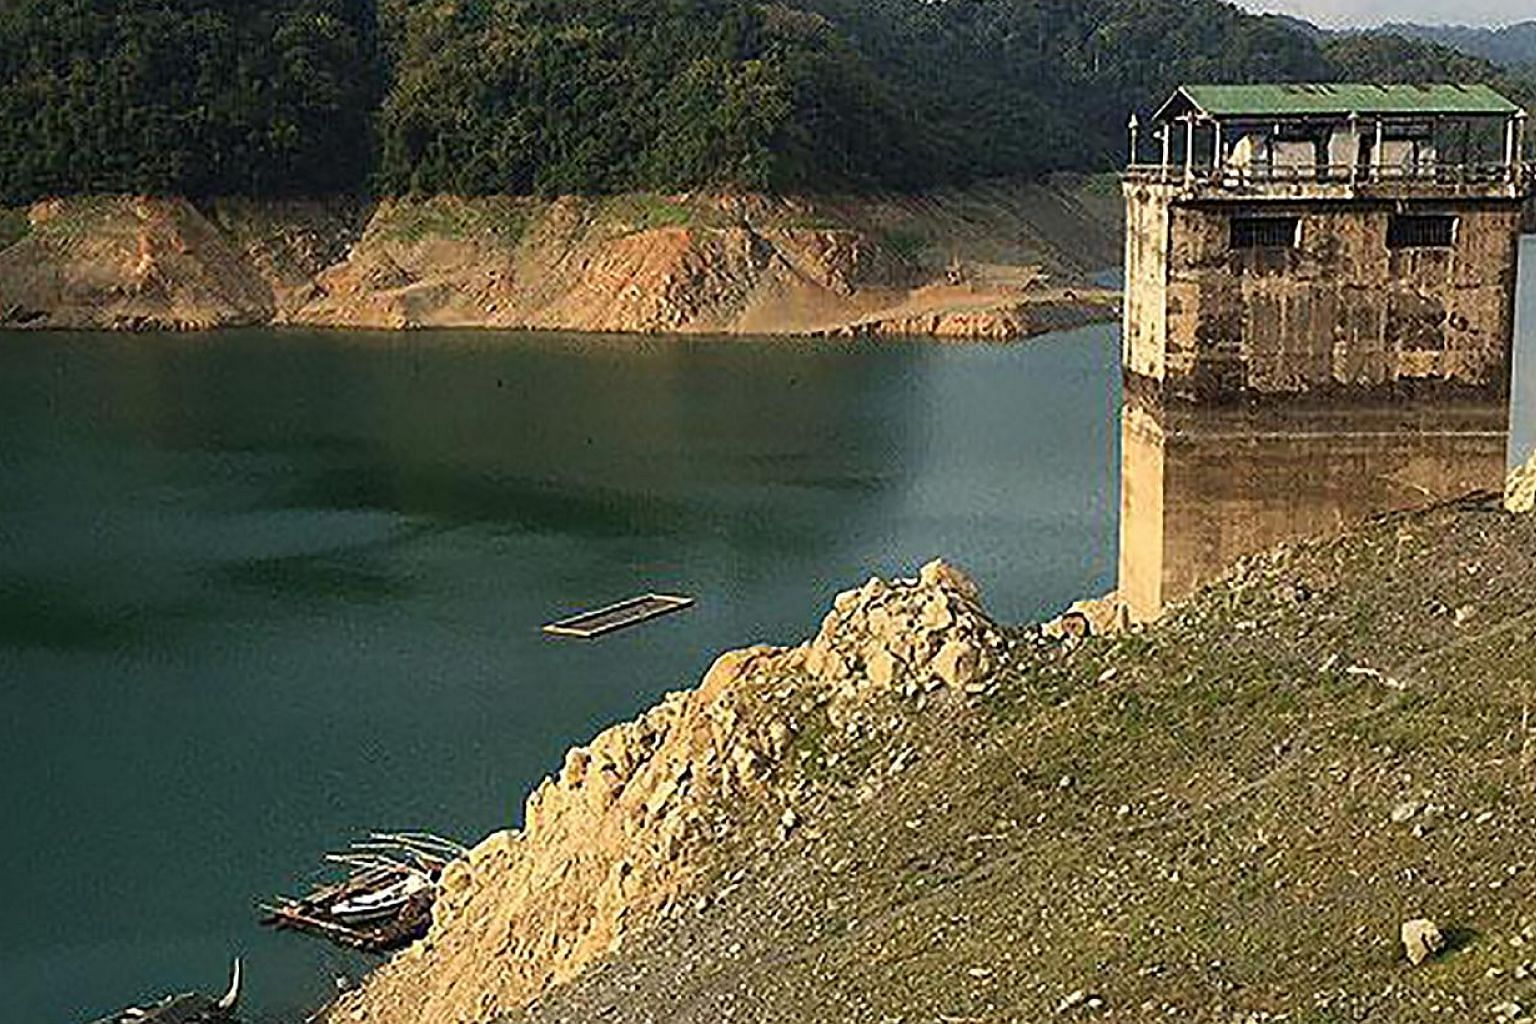 The water level is dropping in the Angat Dam reservoir, the main source of water for more than 21 million people in metropolitan Manila and seven adjacent provinces. Irrigation to farmlands and even tap water may be shut off if the level continues to